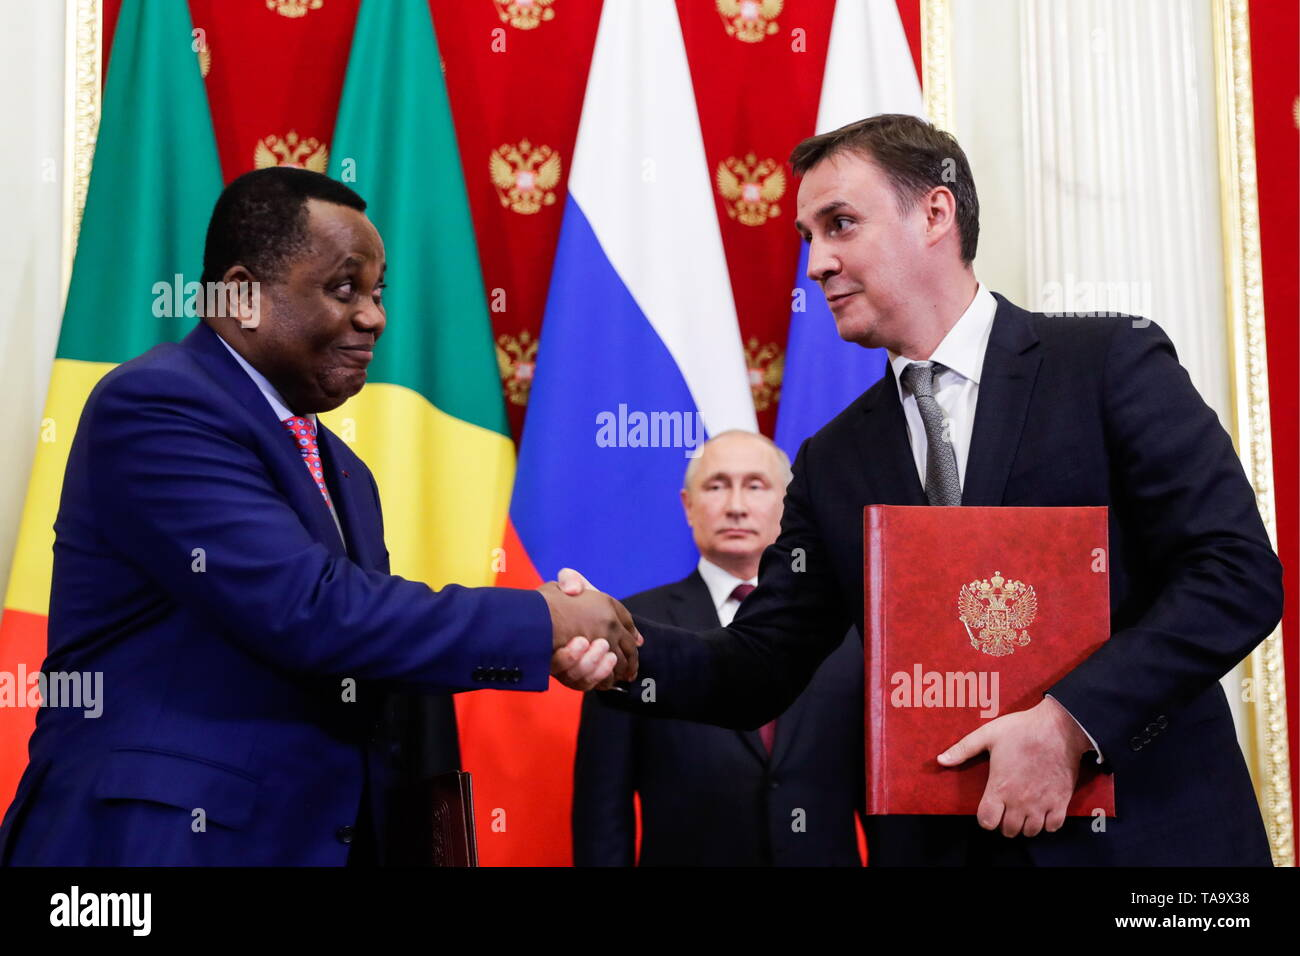 Moscow, Russia. 23rd May, 2019. MOSCOW, RUSSIA - MAY 23, 2019: Russia's Agriculture Minister Dmitry Patrushev (R front) shakes hands with a Congolese official at a ceremony attended by Russia's President Vladimir Putin (R back) to sign joint documents on Russian-Congolese talks at the Moscow Kremlin. Mikhail Metzel/TASS Credit: ITAR-TASS News Agency/Alamy Live News - Stock Image